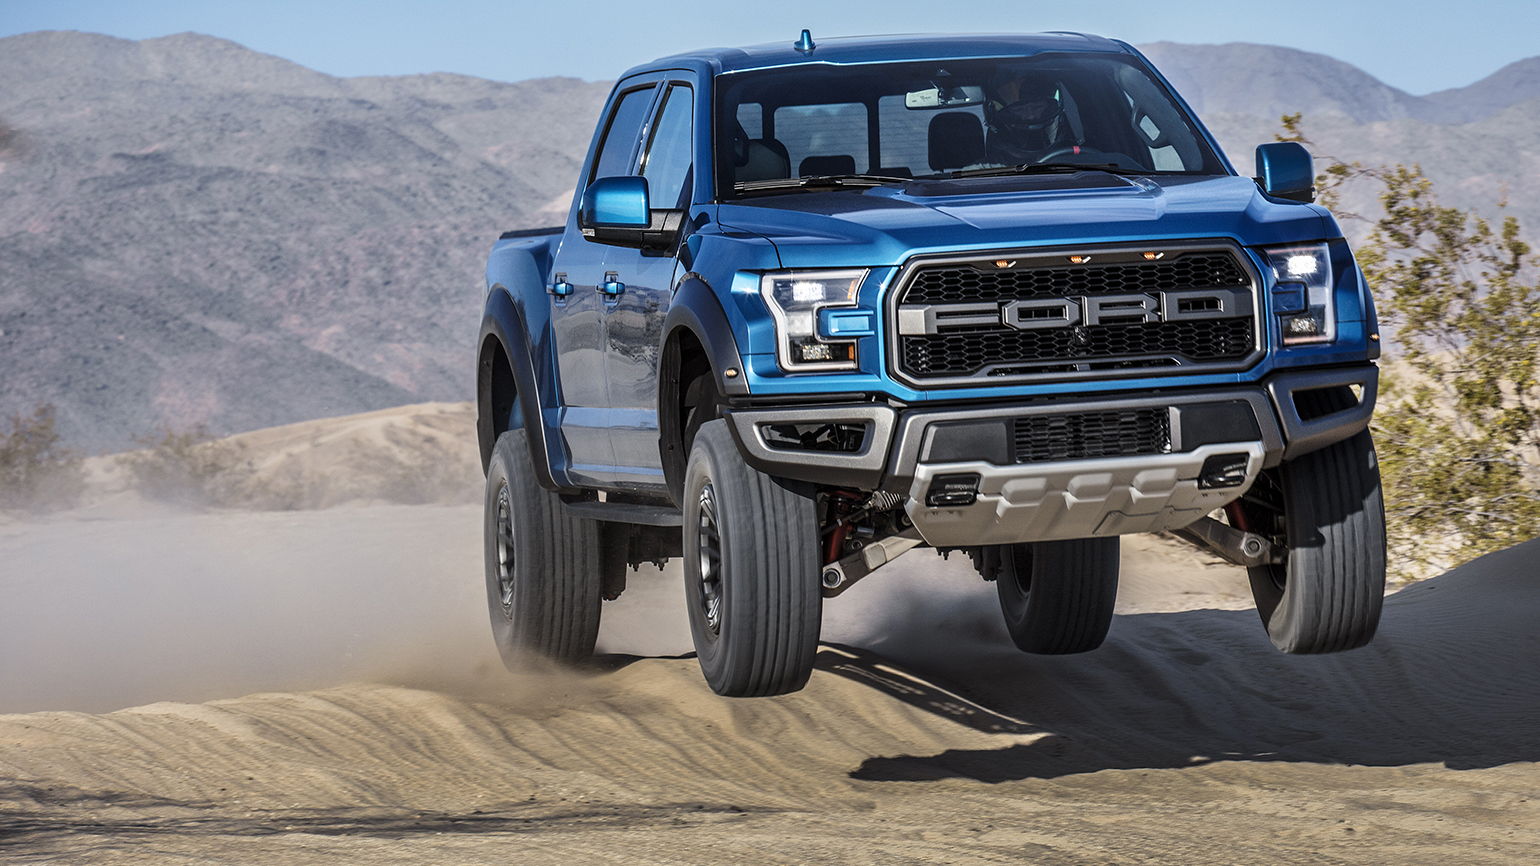 19 F 150 Raptor Can Tell When Truck Is Mid Air Manage Throttle Off Road Fleetowner